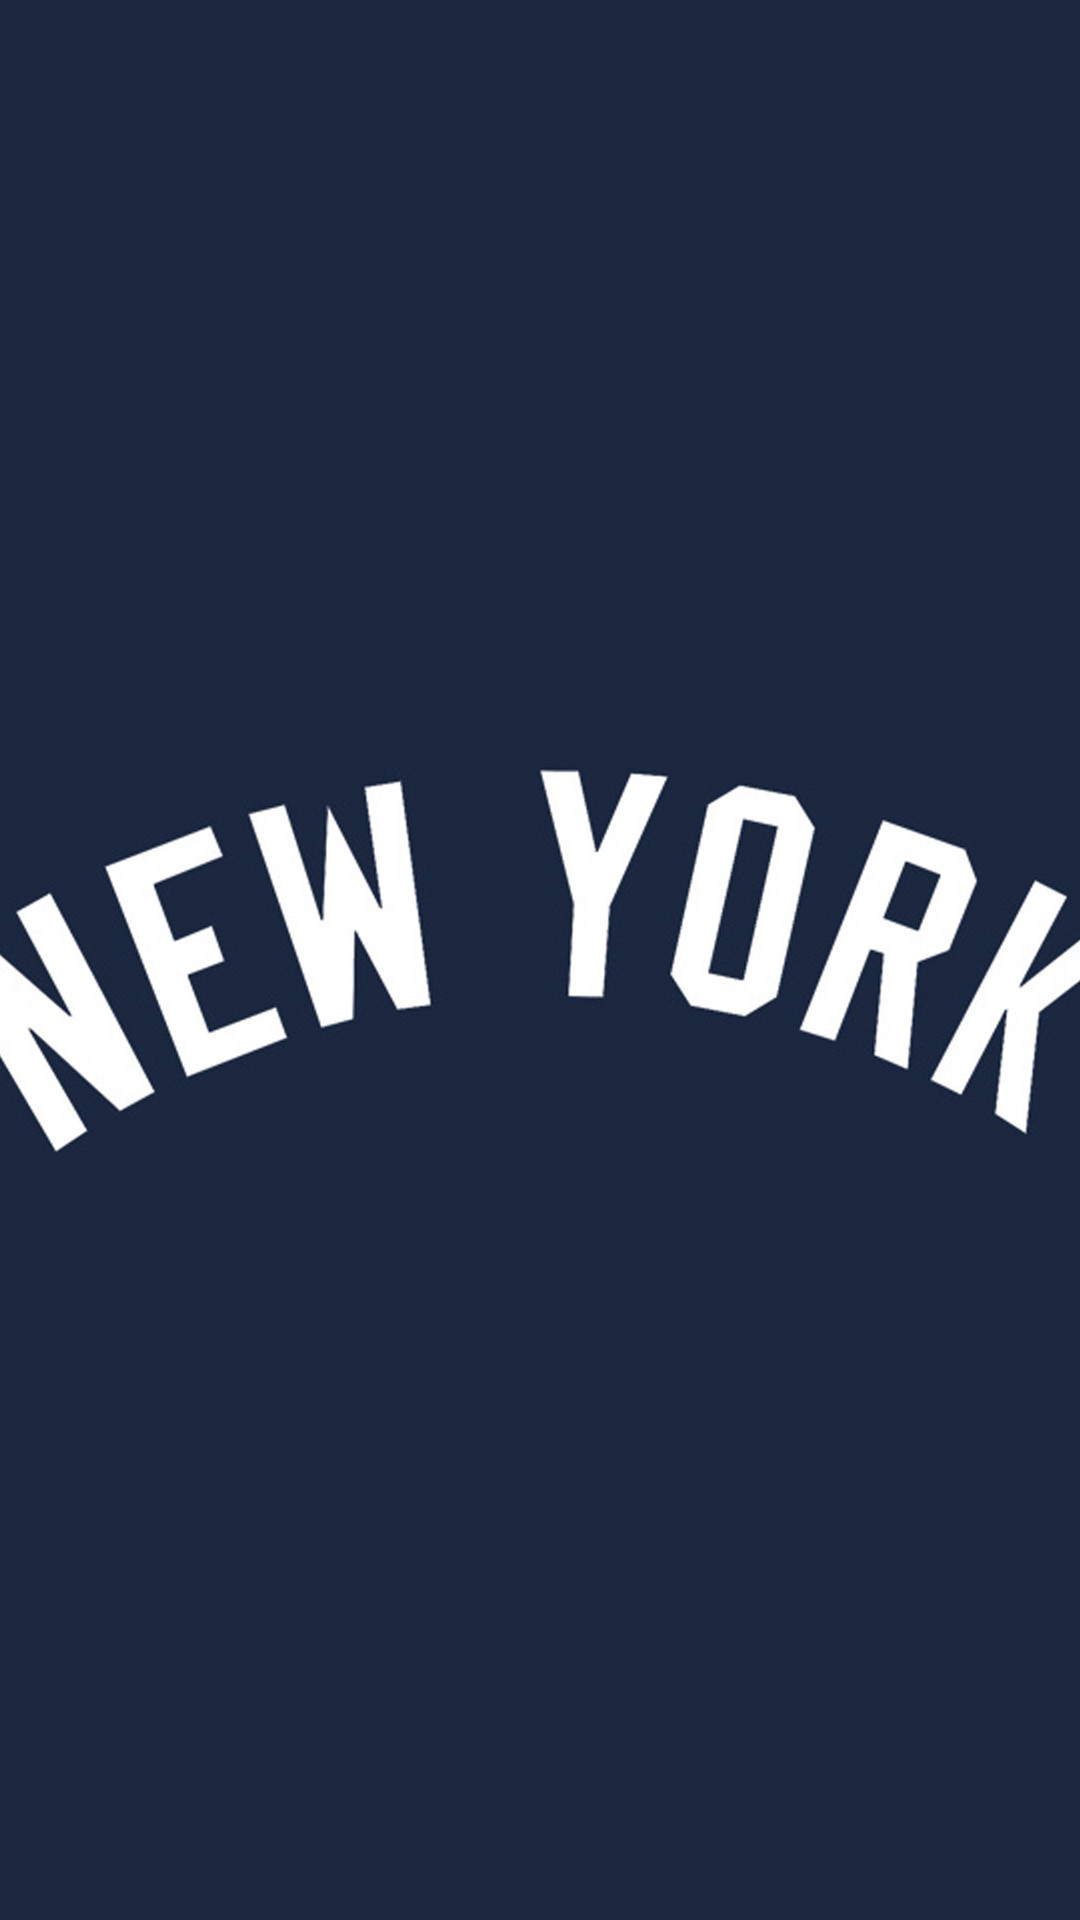 1920x1200 Yankees Logo Wallpaper Hd Desktop Best New York For Fans Brand Of Androids